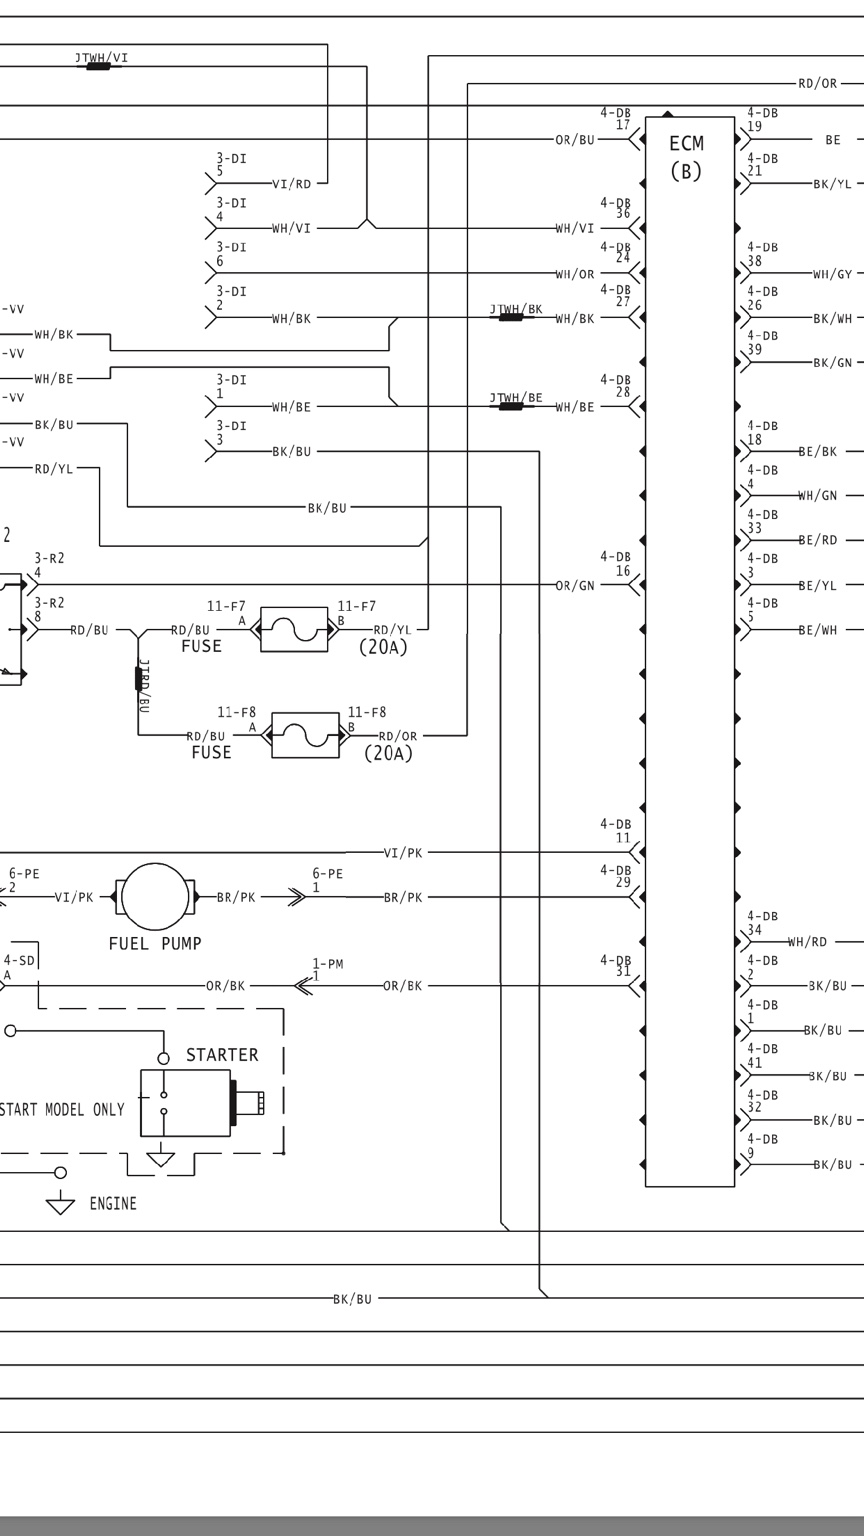 1000 Sdi Ground Wires From Ecm Mach Z Rt And Mxz Models Complete Wiring Diagram 281c2d1cd3bae7ad1c7190eb95a9af43